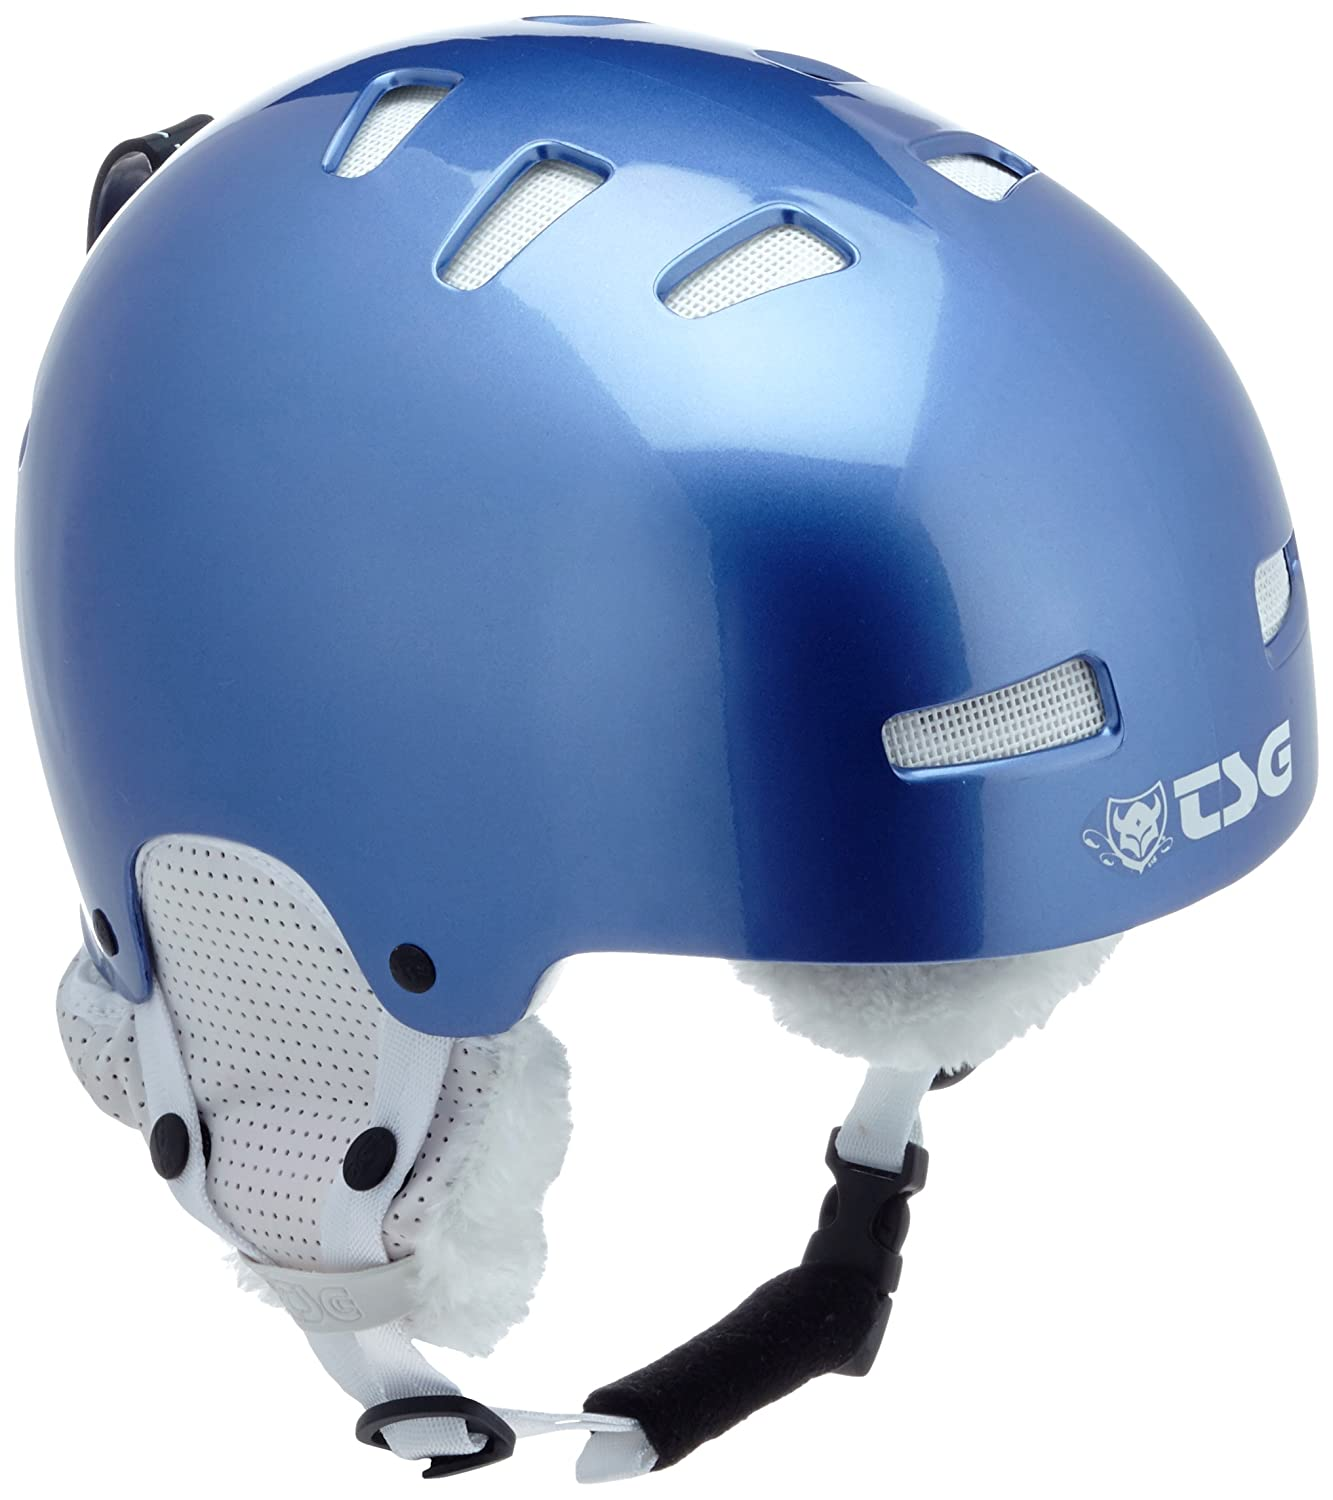 TSG Helm Lotus Solid Color - Casco de esquí: Amazon.es: Deportes y aire libre